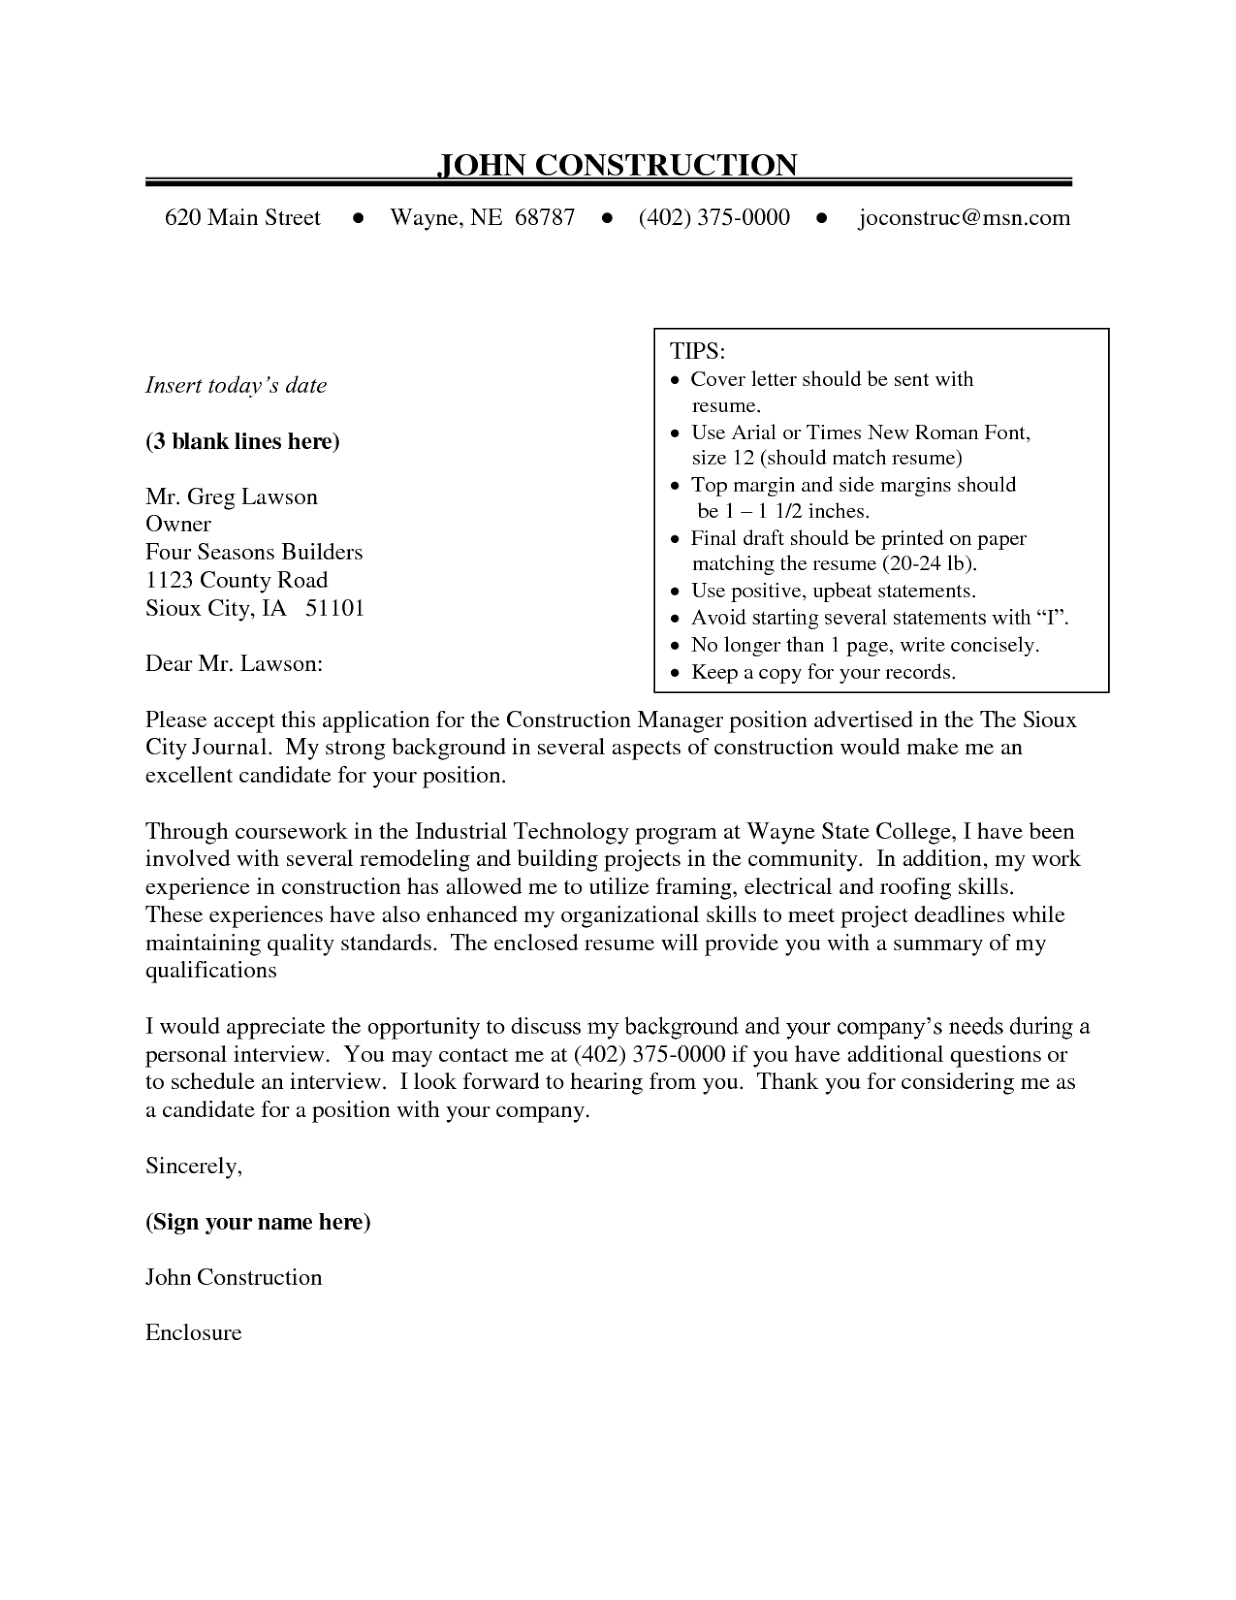 cover letter template mcgill five fantastic vacation ideas simple resume format pdf download for freshers account executive computer teacher